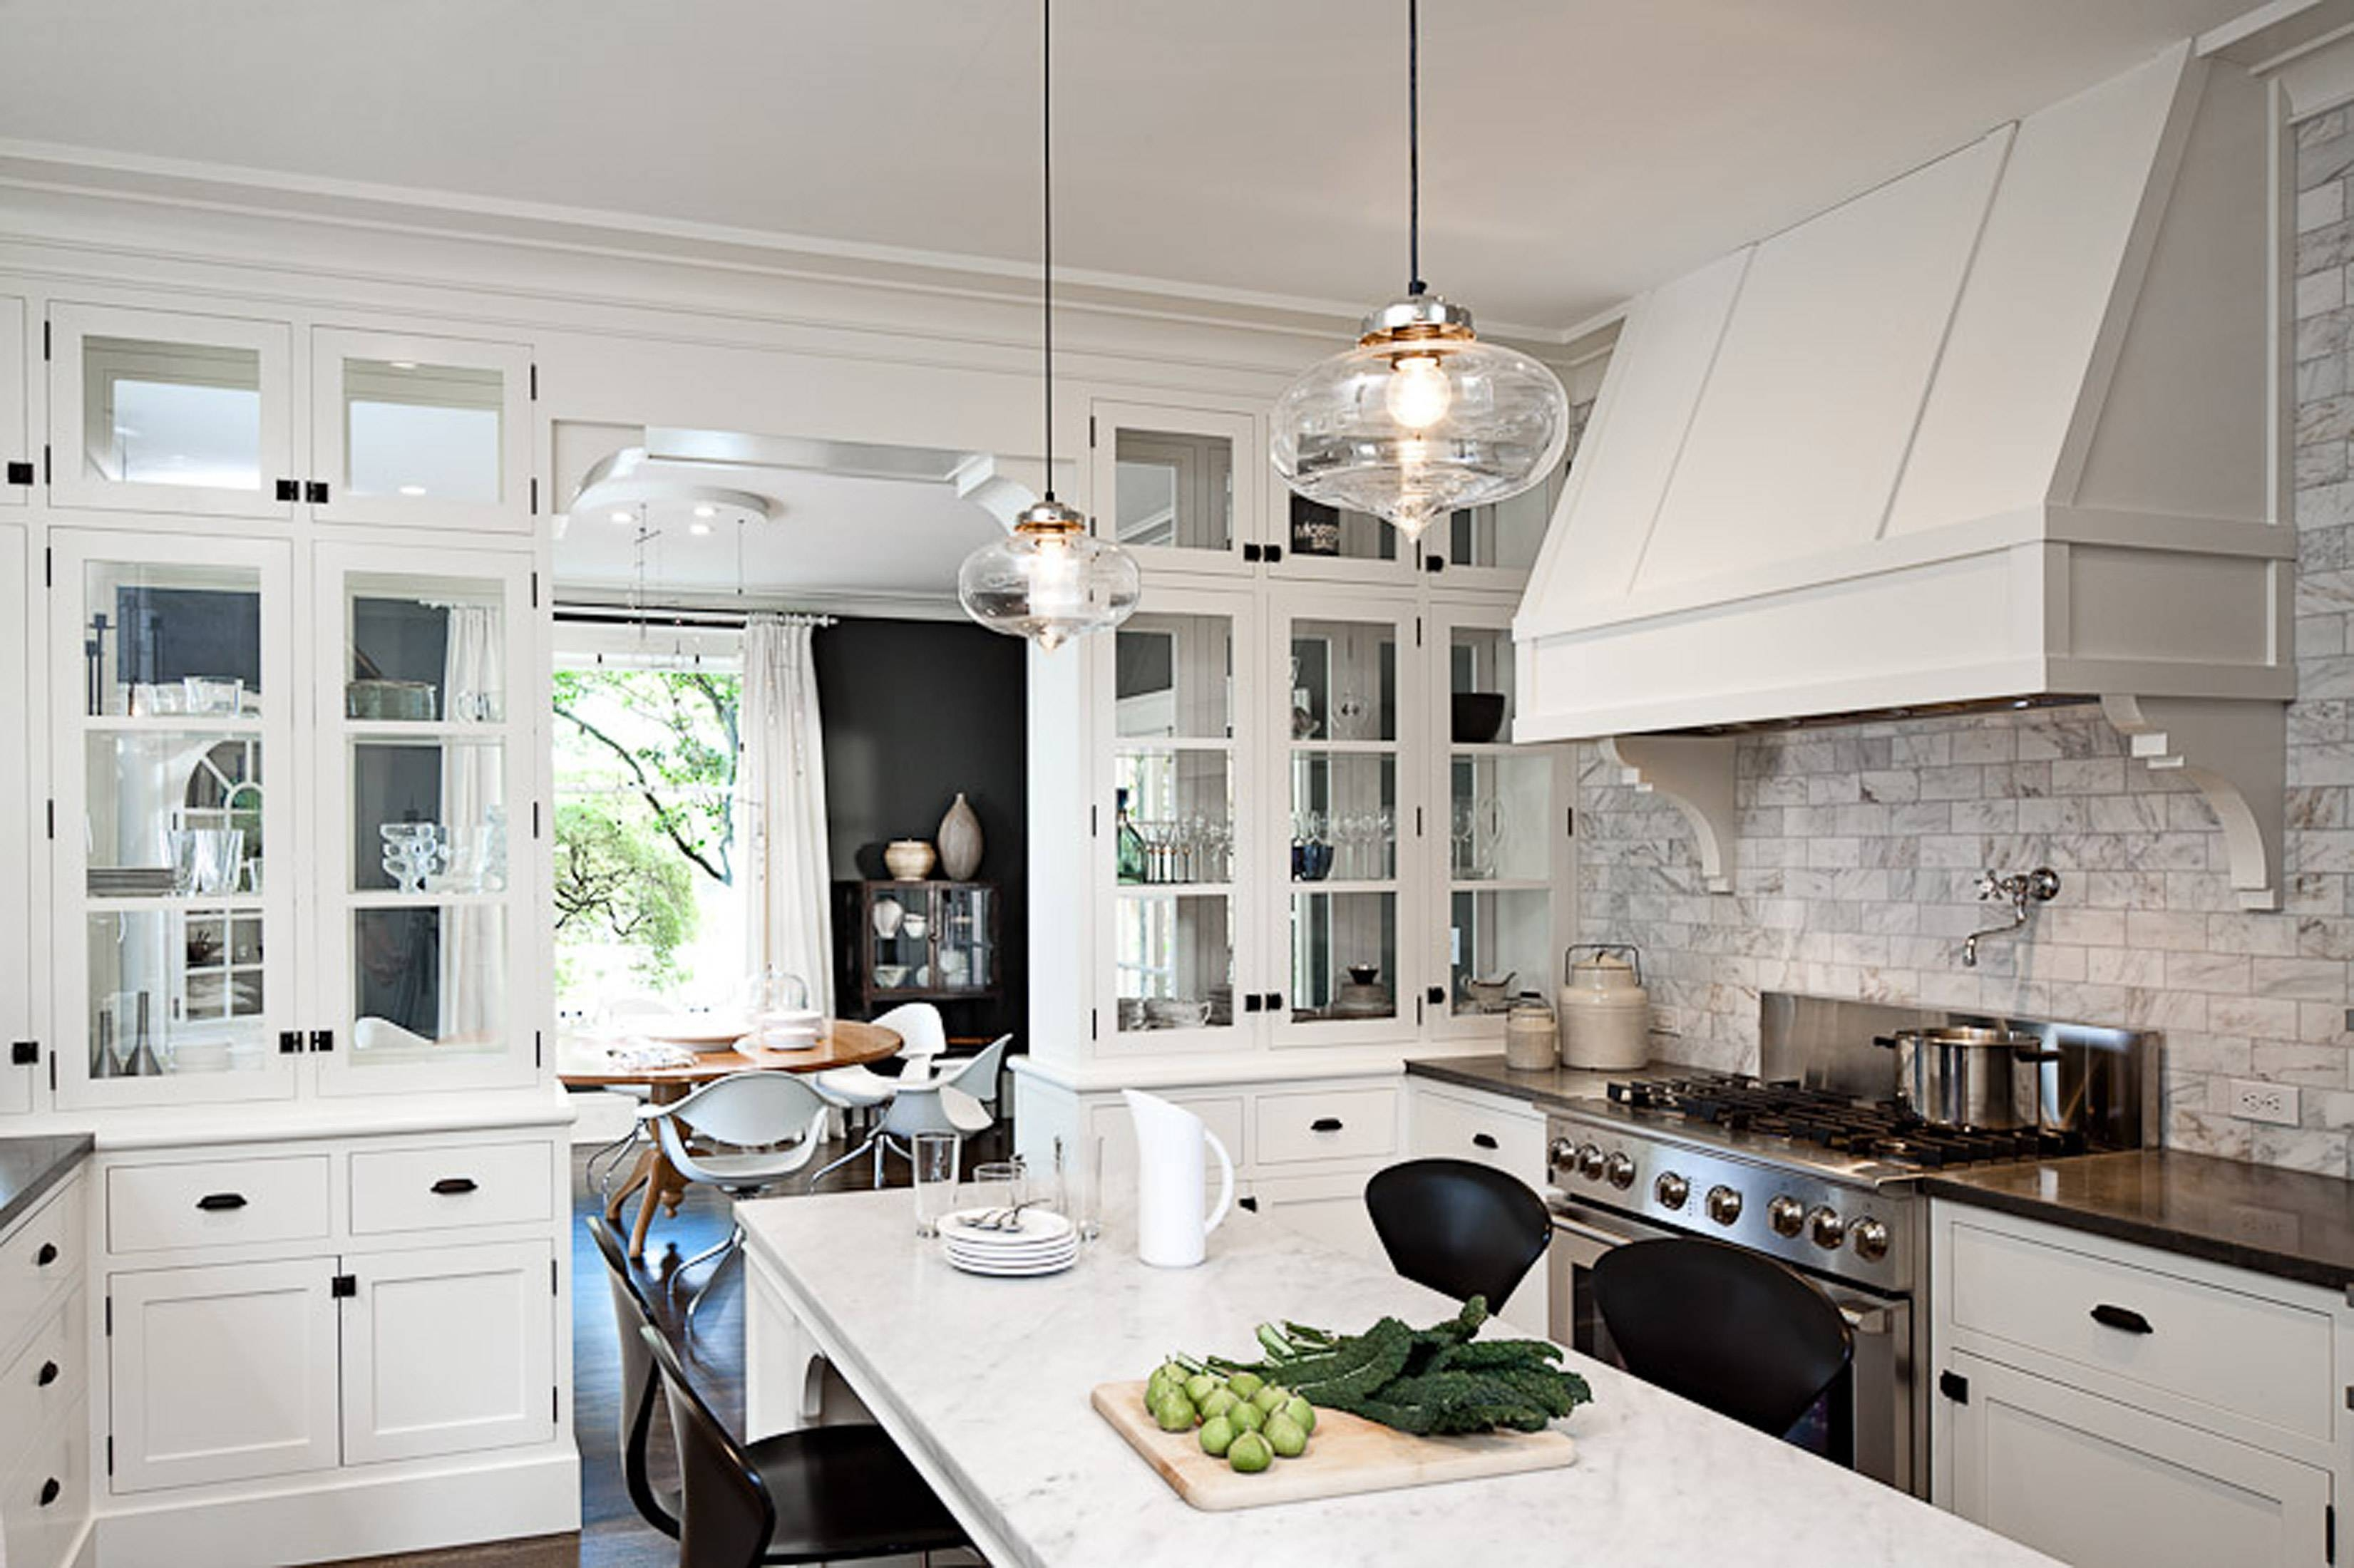 Pendant Lighting Ideas. Best Contemporary Pendant Lighting For in Silver Kitchen Pendant Lighting (Image 8 of 15)